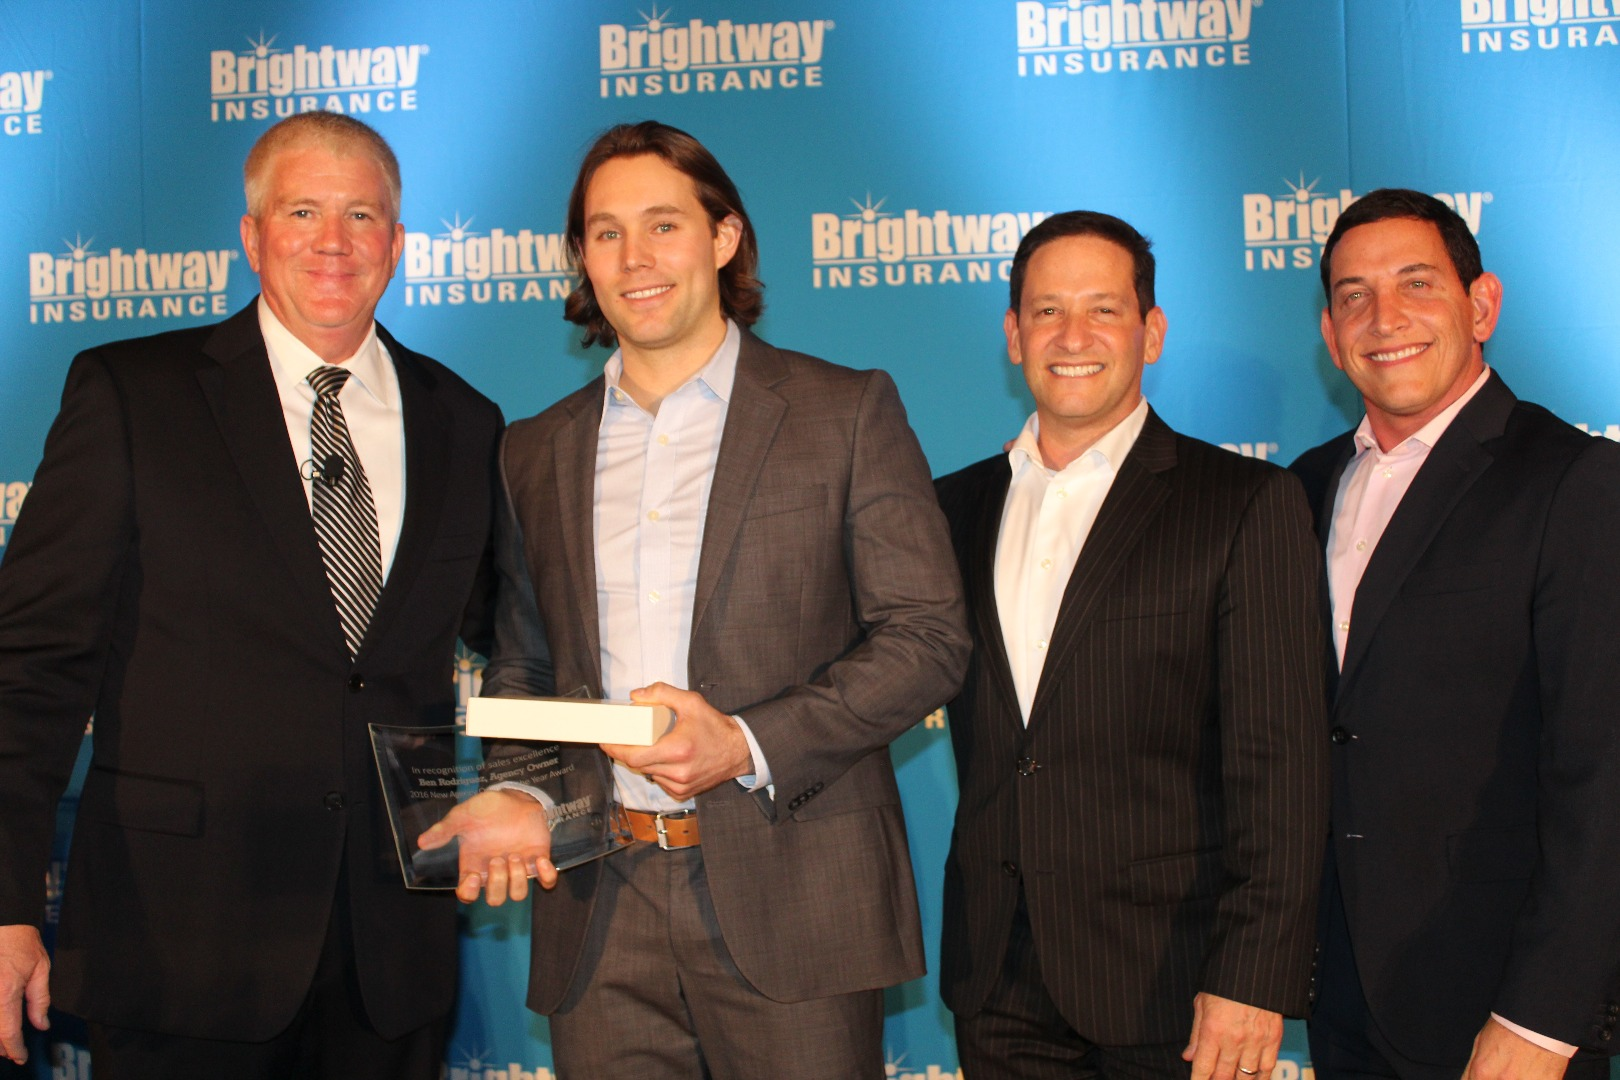 01.18.2017_Brightway Insurance names Ben Rodriguez 2016 New Agency Owner of the Year.JPG